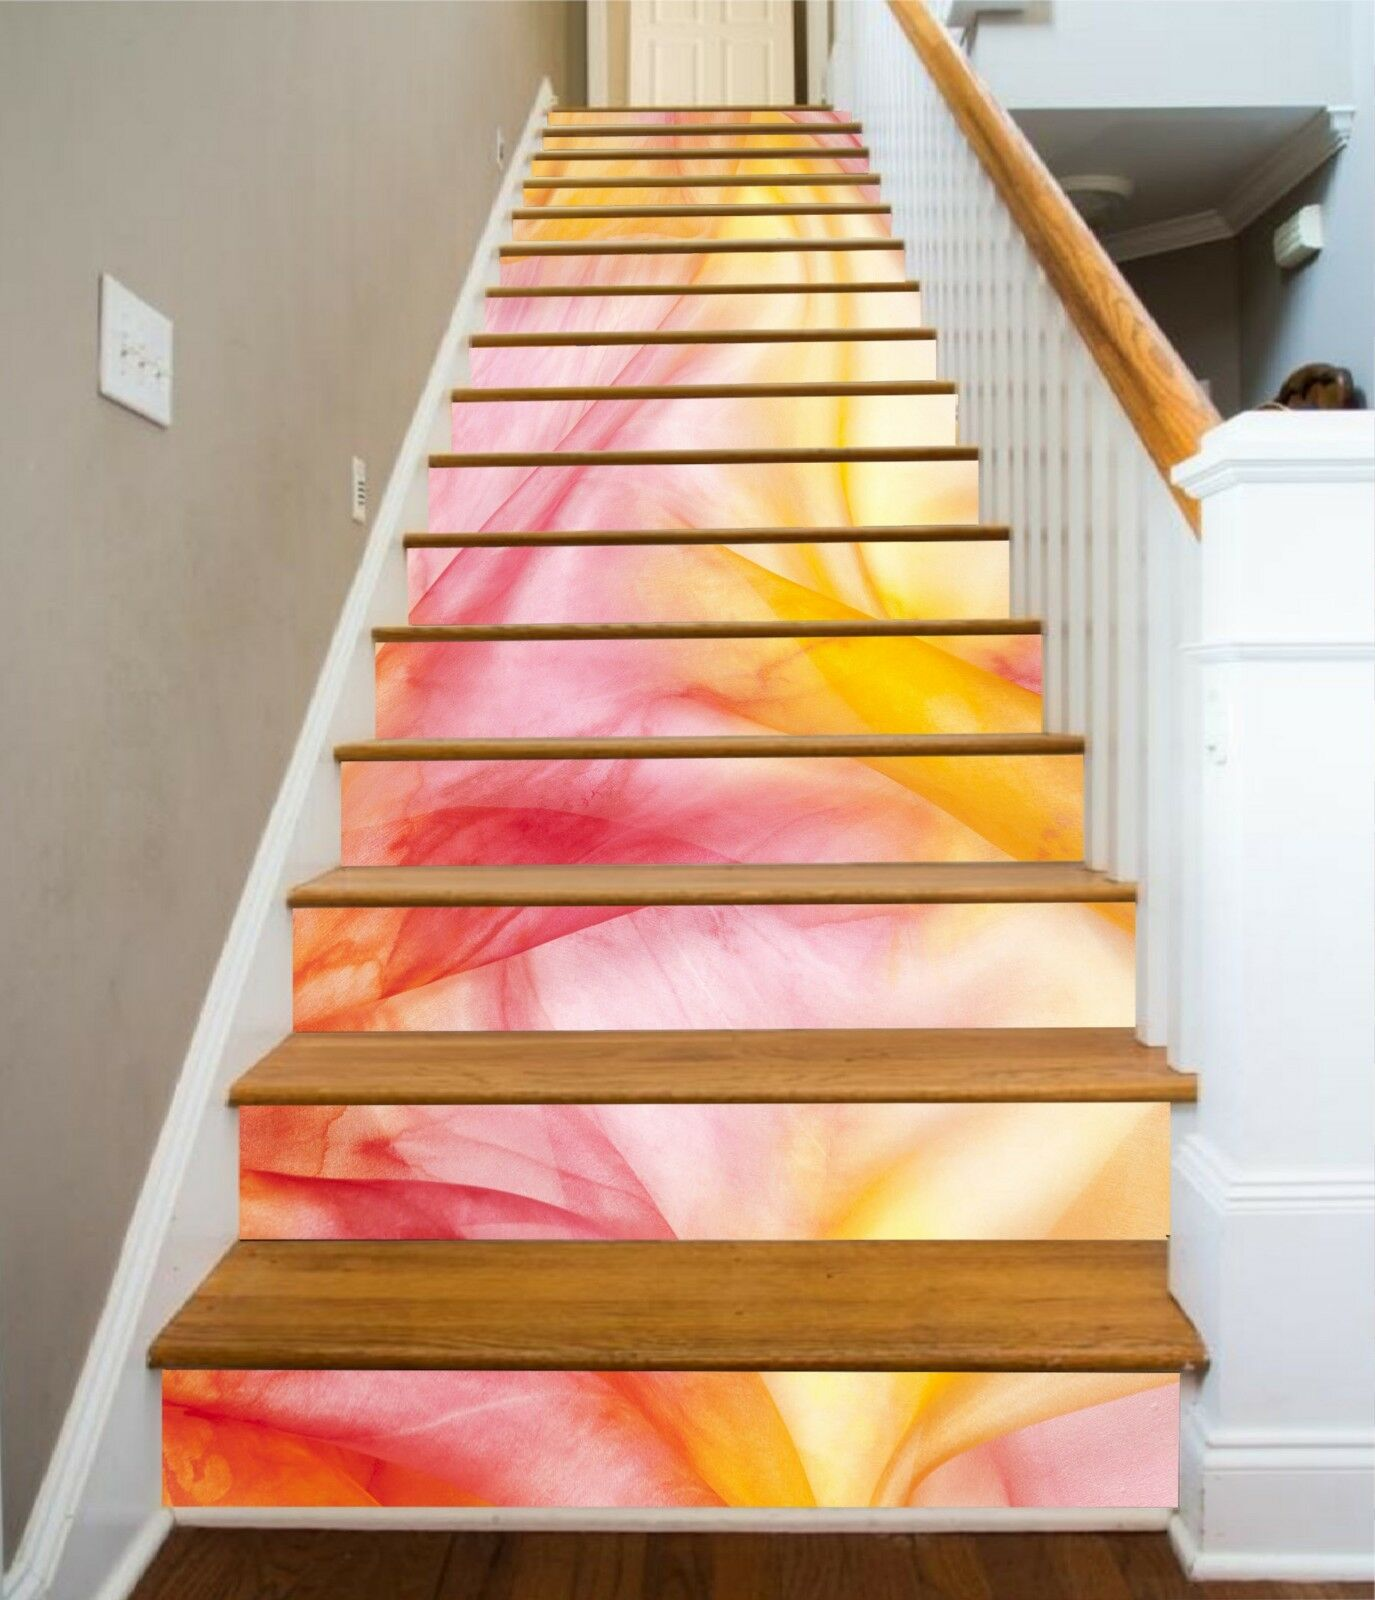 3D color Pattern Stair Risers Decoration Photo Mural Vinyl Decal Wallpaper CA